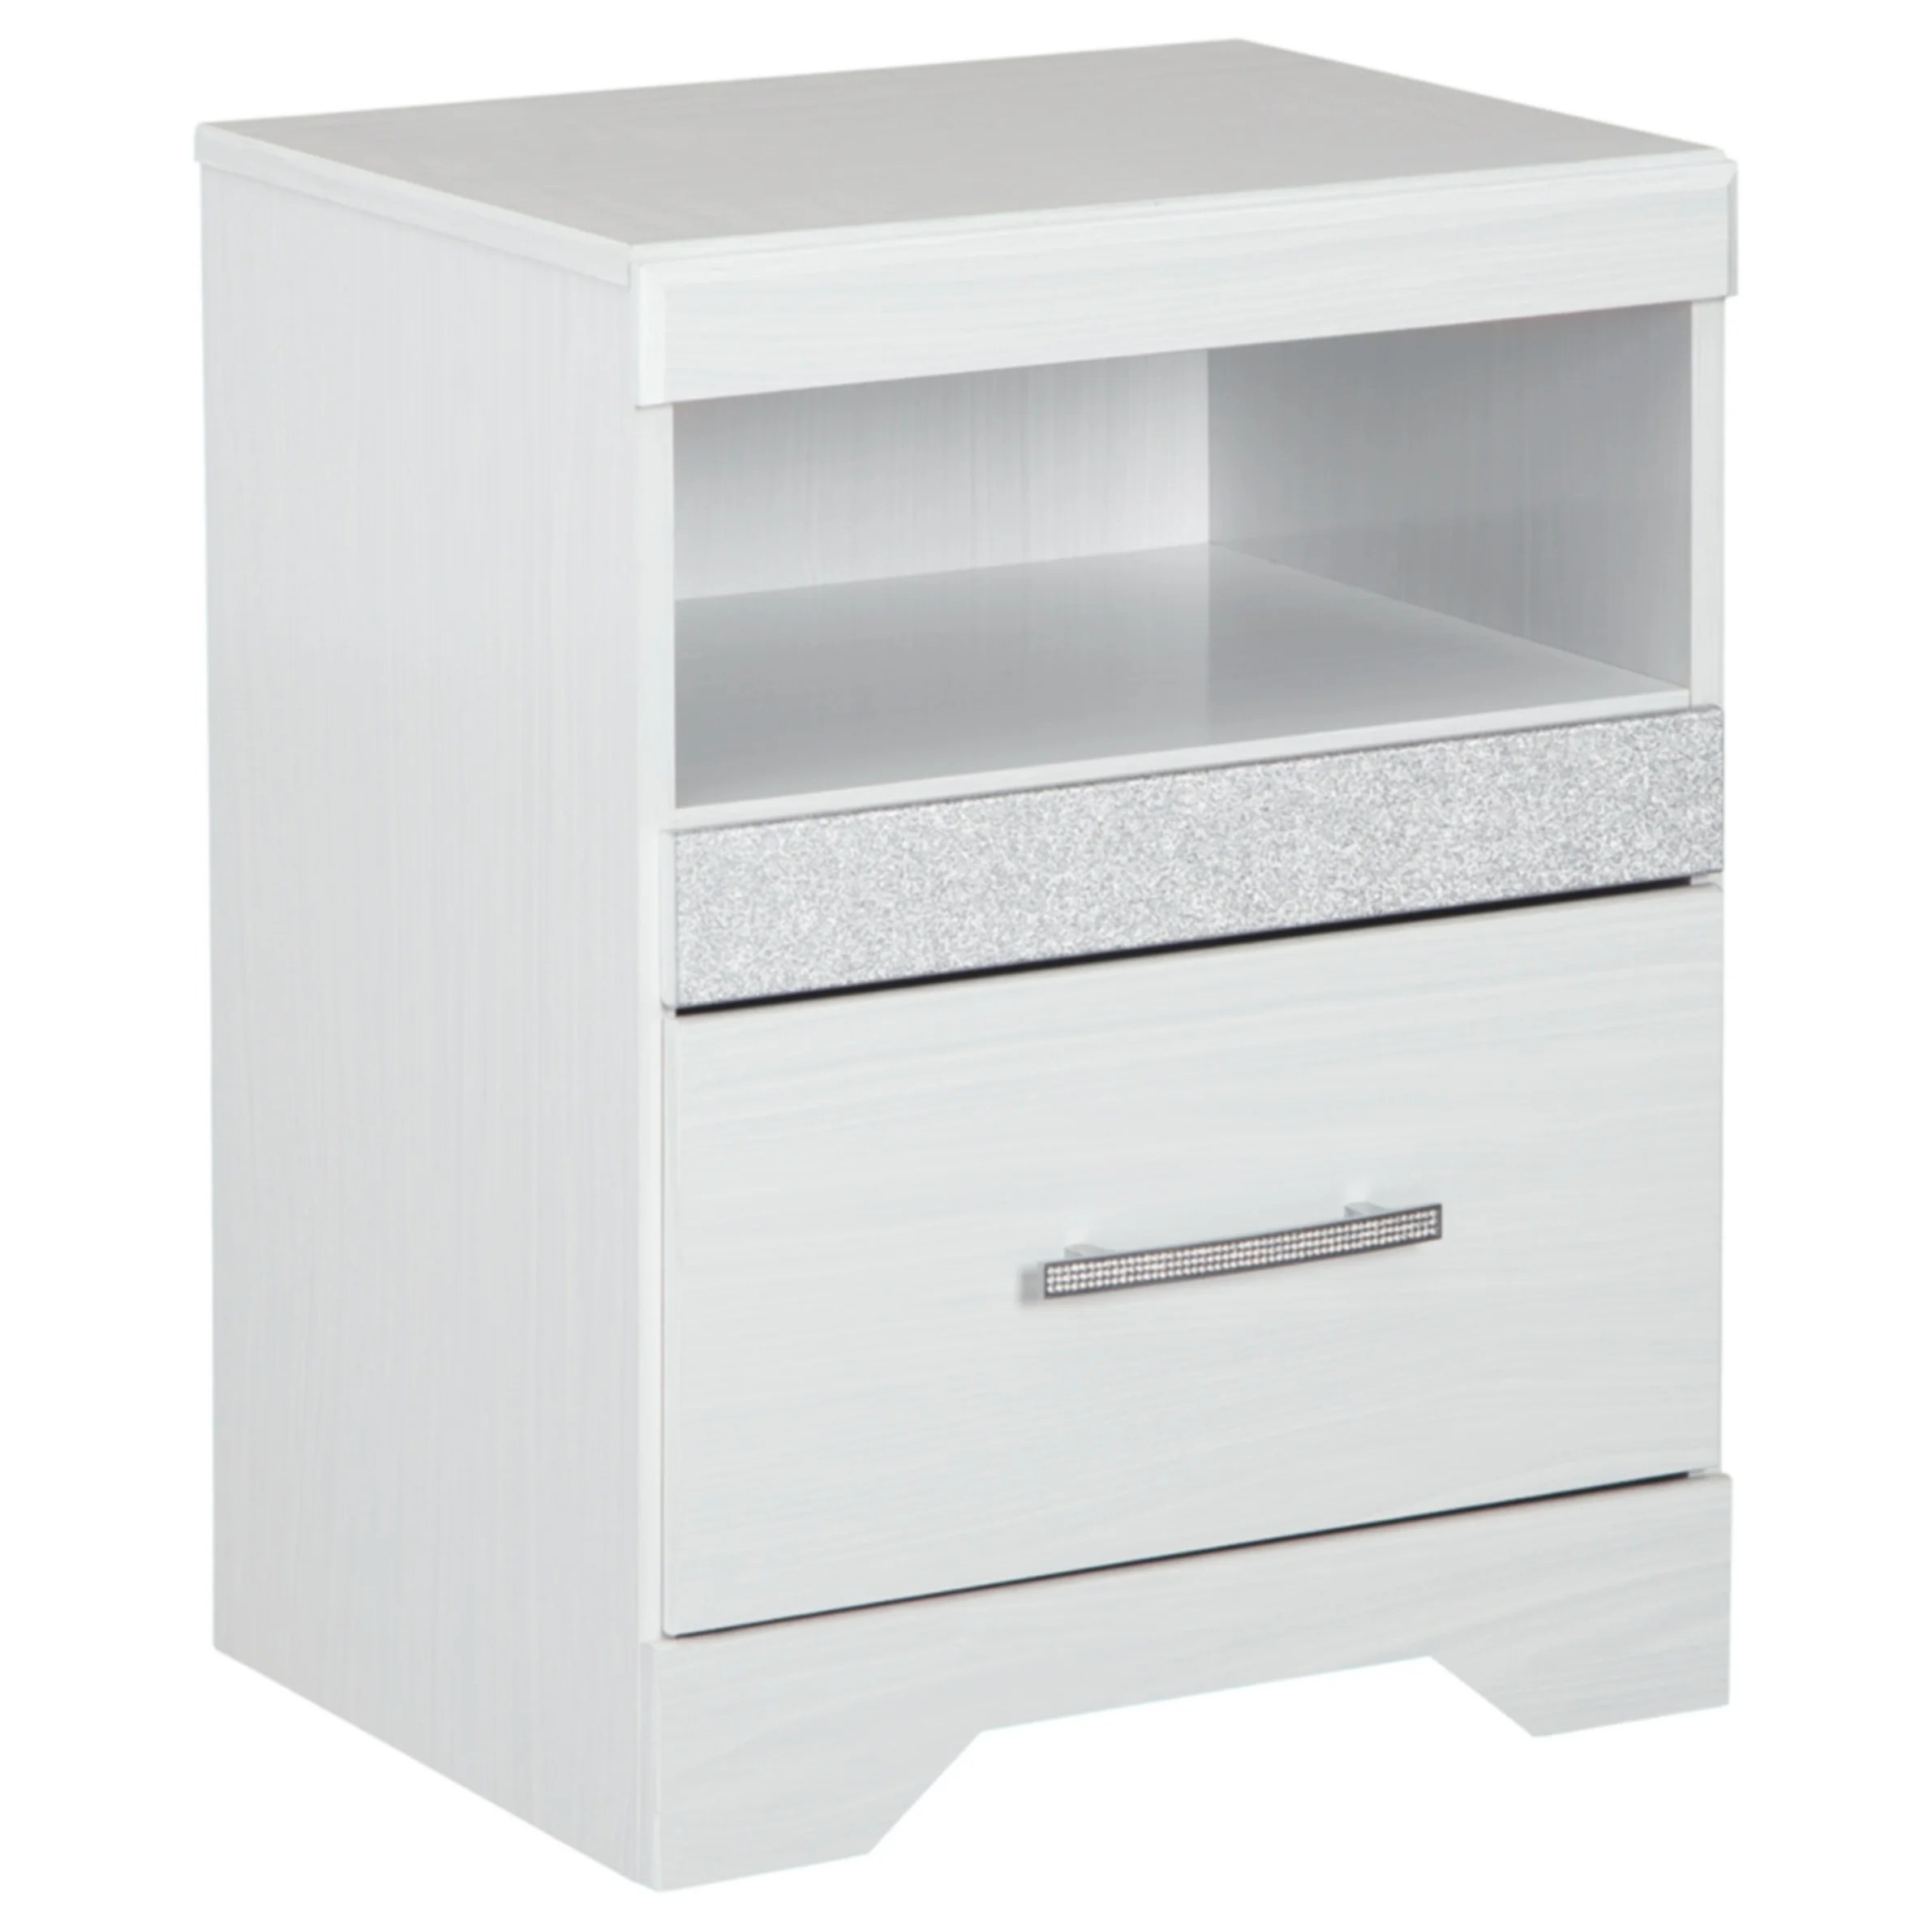 Jallory White One Drawer Nightstand